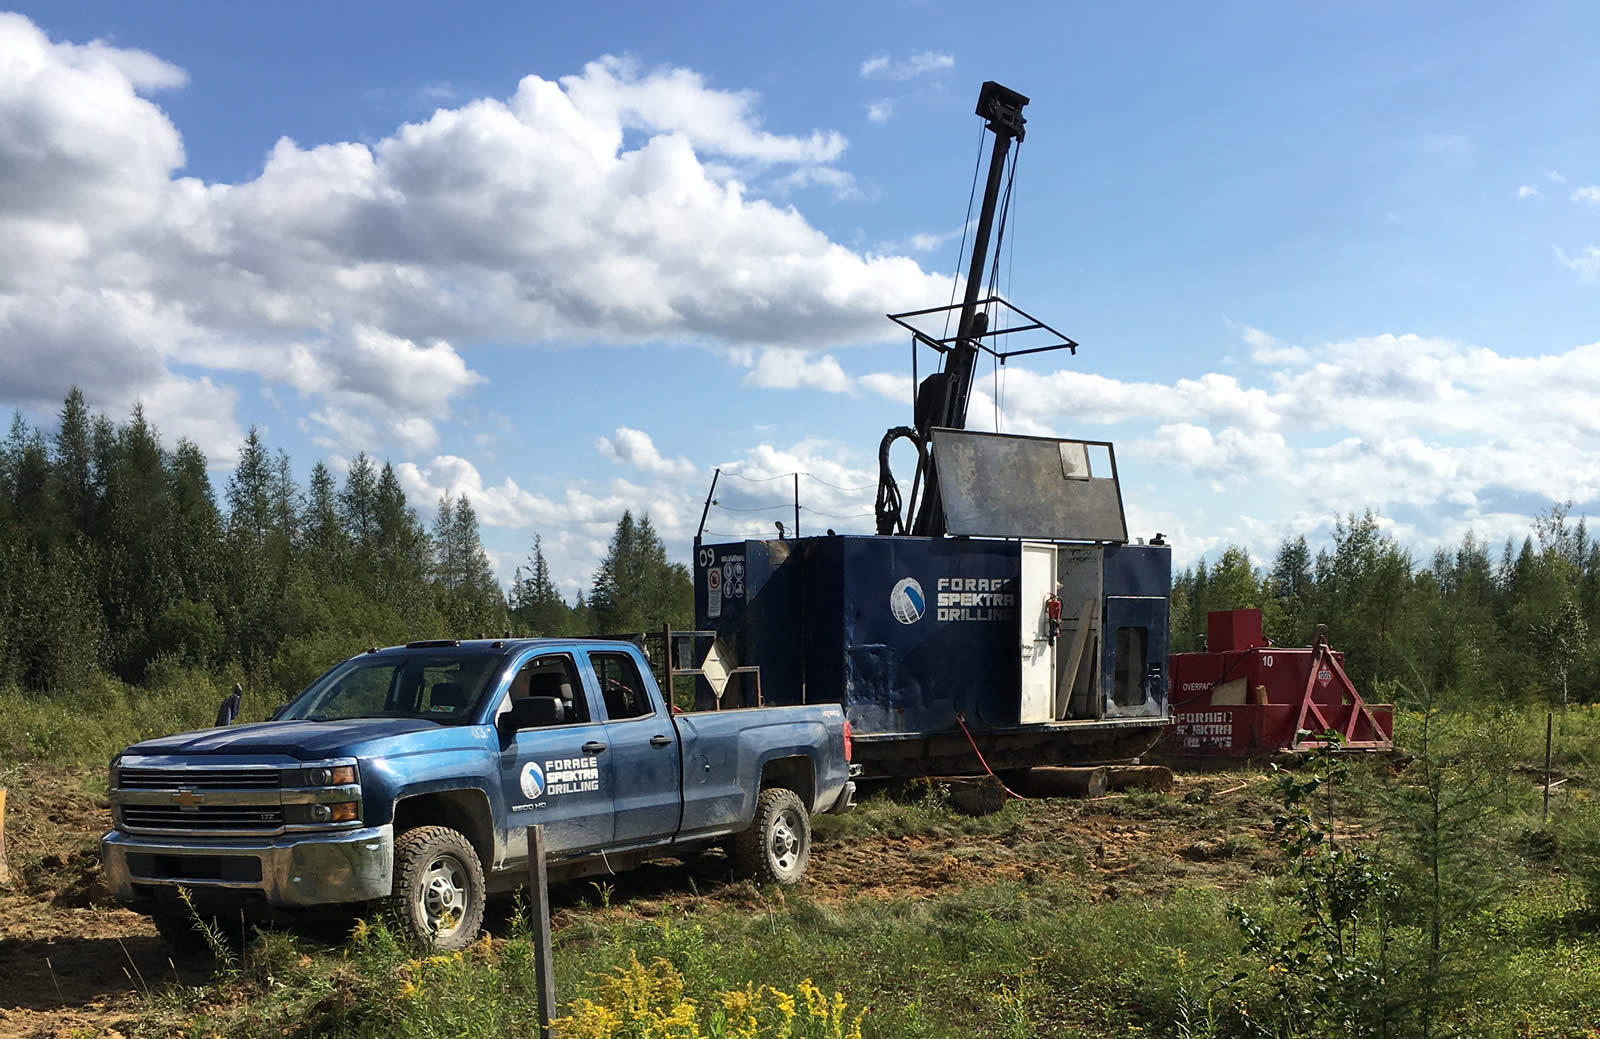 Monarch Mining Intersects Significant Gold Mineralization 1 Km South Of The Mckenzie Break Deposit